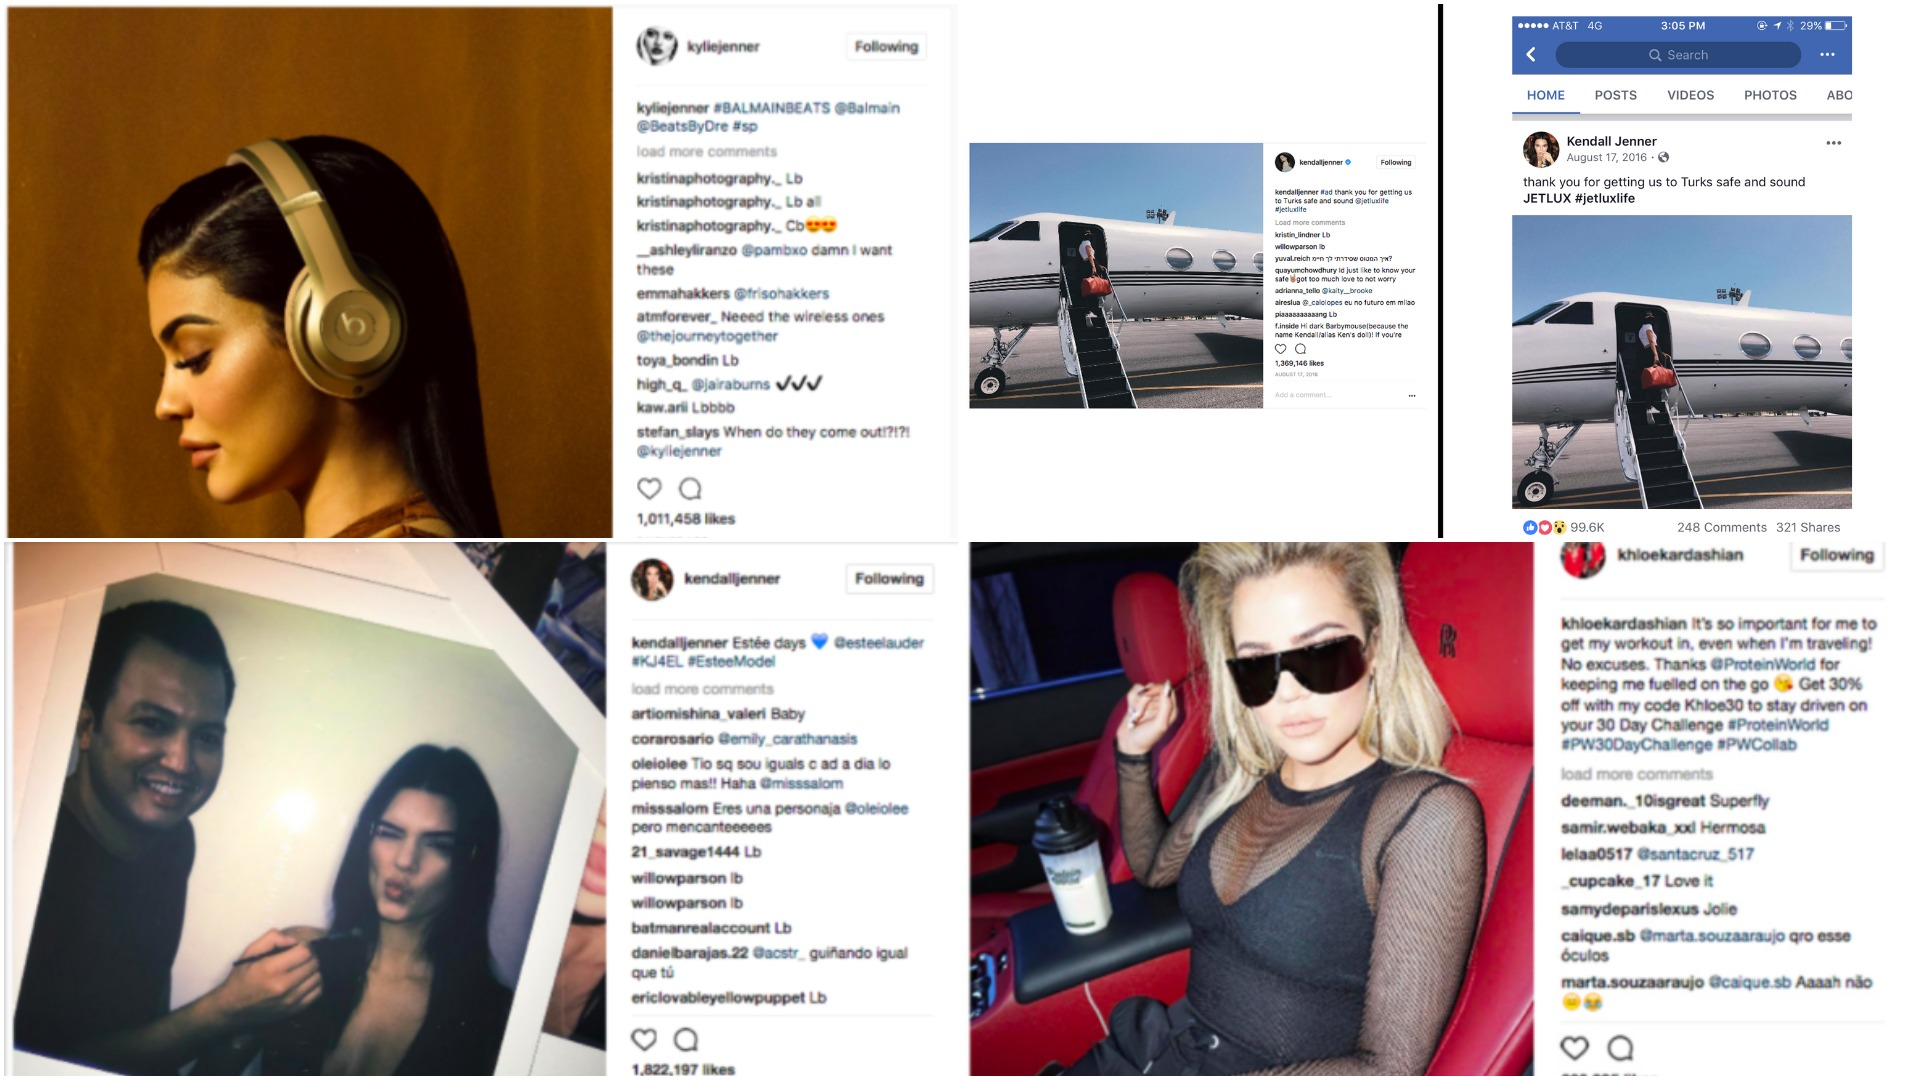 Kardashians & Jenners Continue Posting Stealth Ads, Despite Warnings